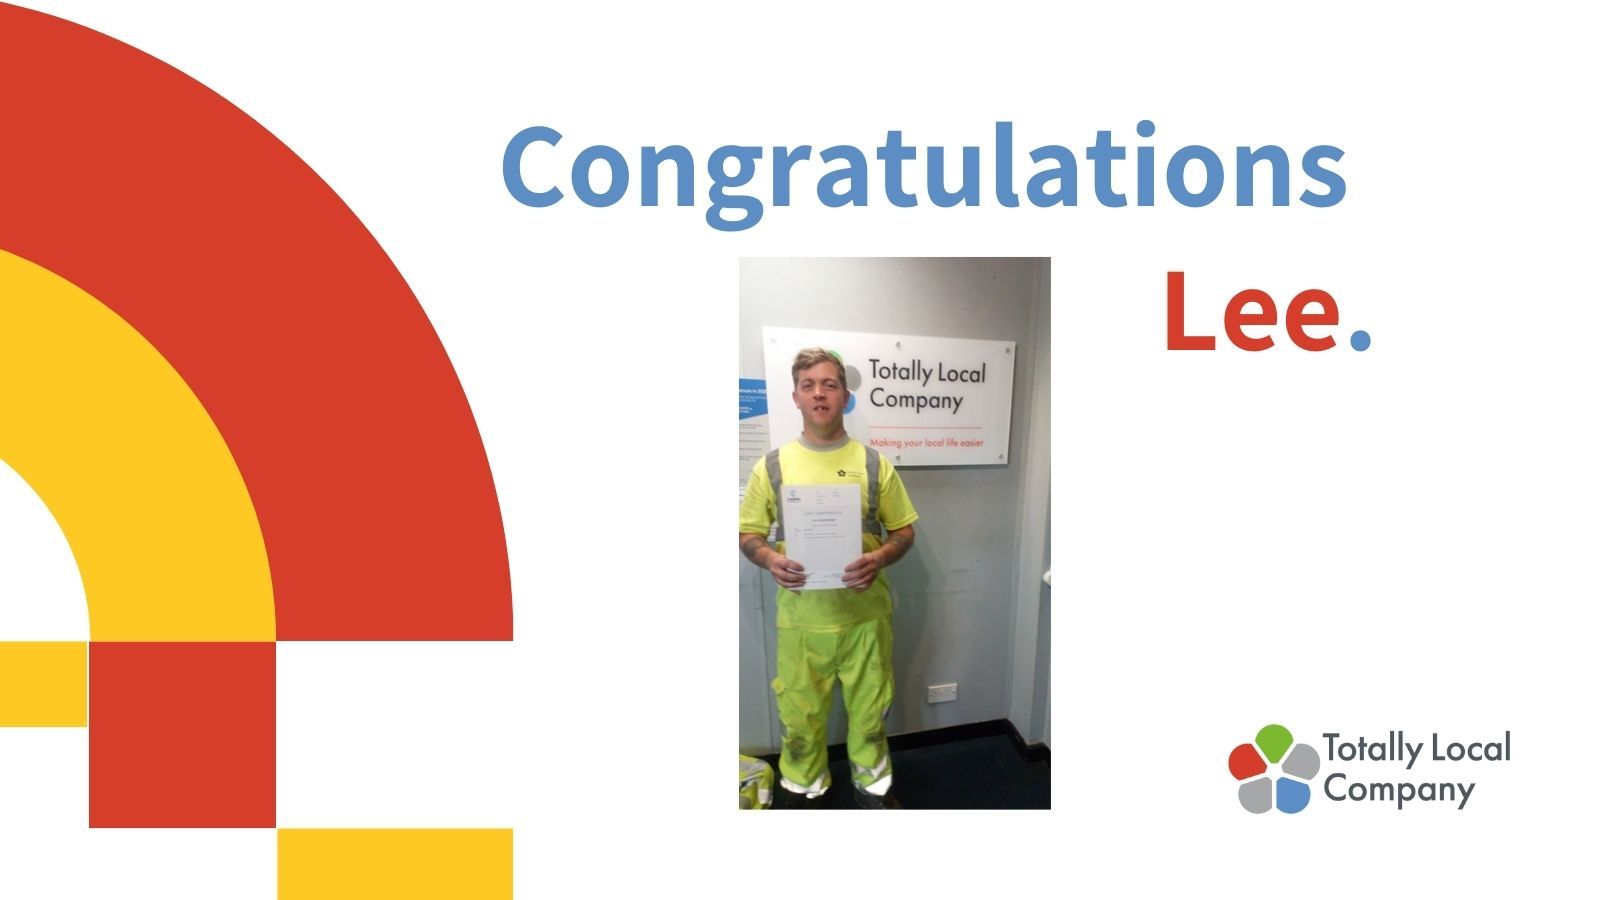 wording - congratulations Lee, image of Lee holding his certificate